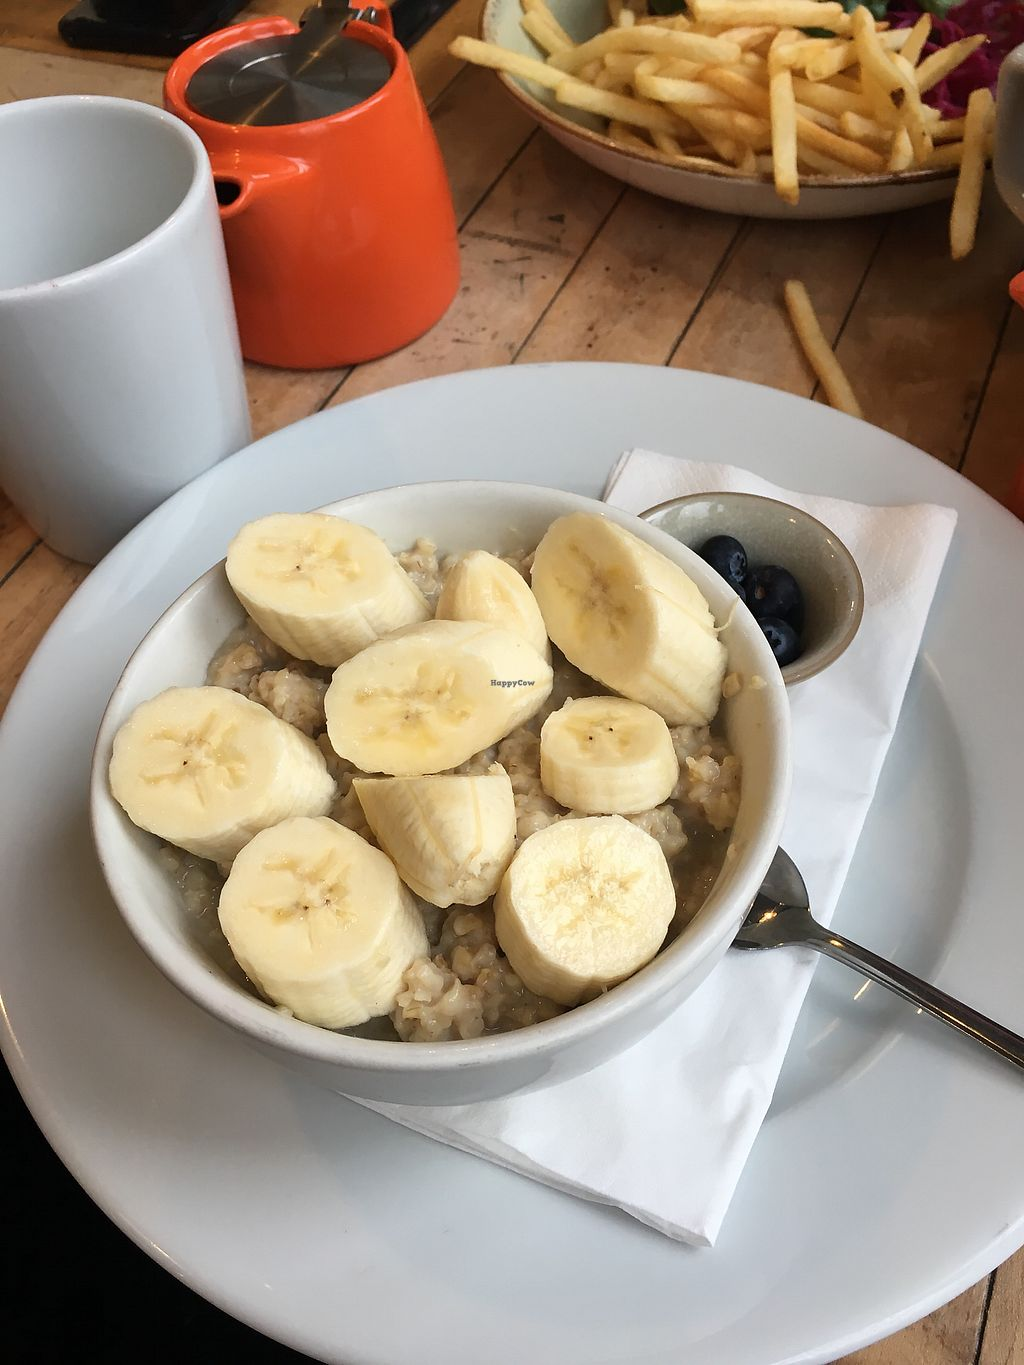 "Photo of Boston Tea Party  by <a href=""/members/profile/RachelJenkins"">RachelJenkins</a> <br/>Soy porridge and bananas  <br/> January 29, 2018  - <a href='/contact/abuse/image/78765/352388'>Report</a>"